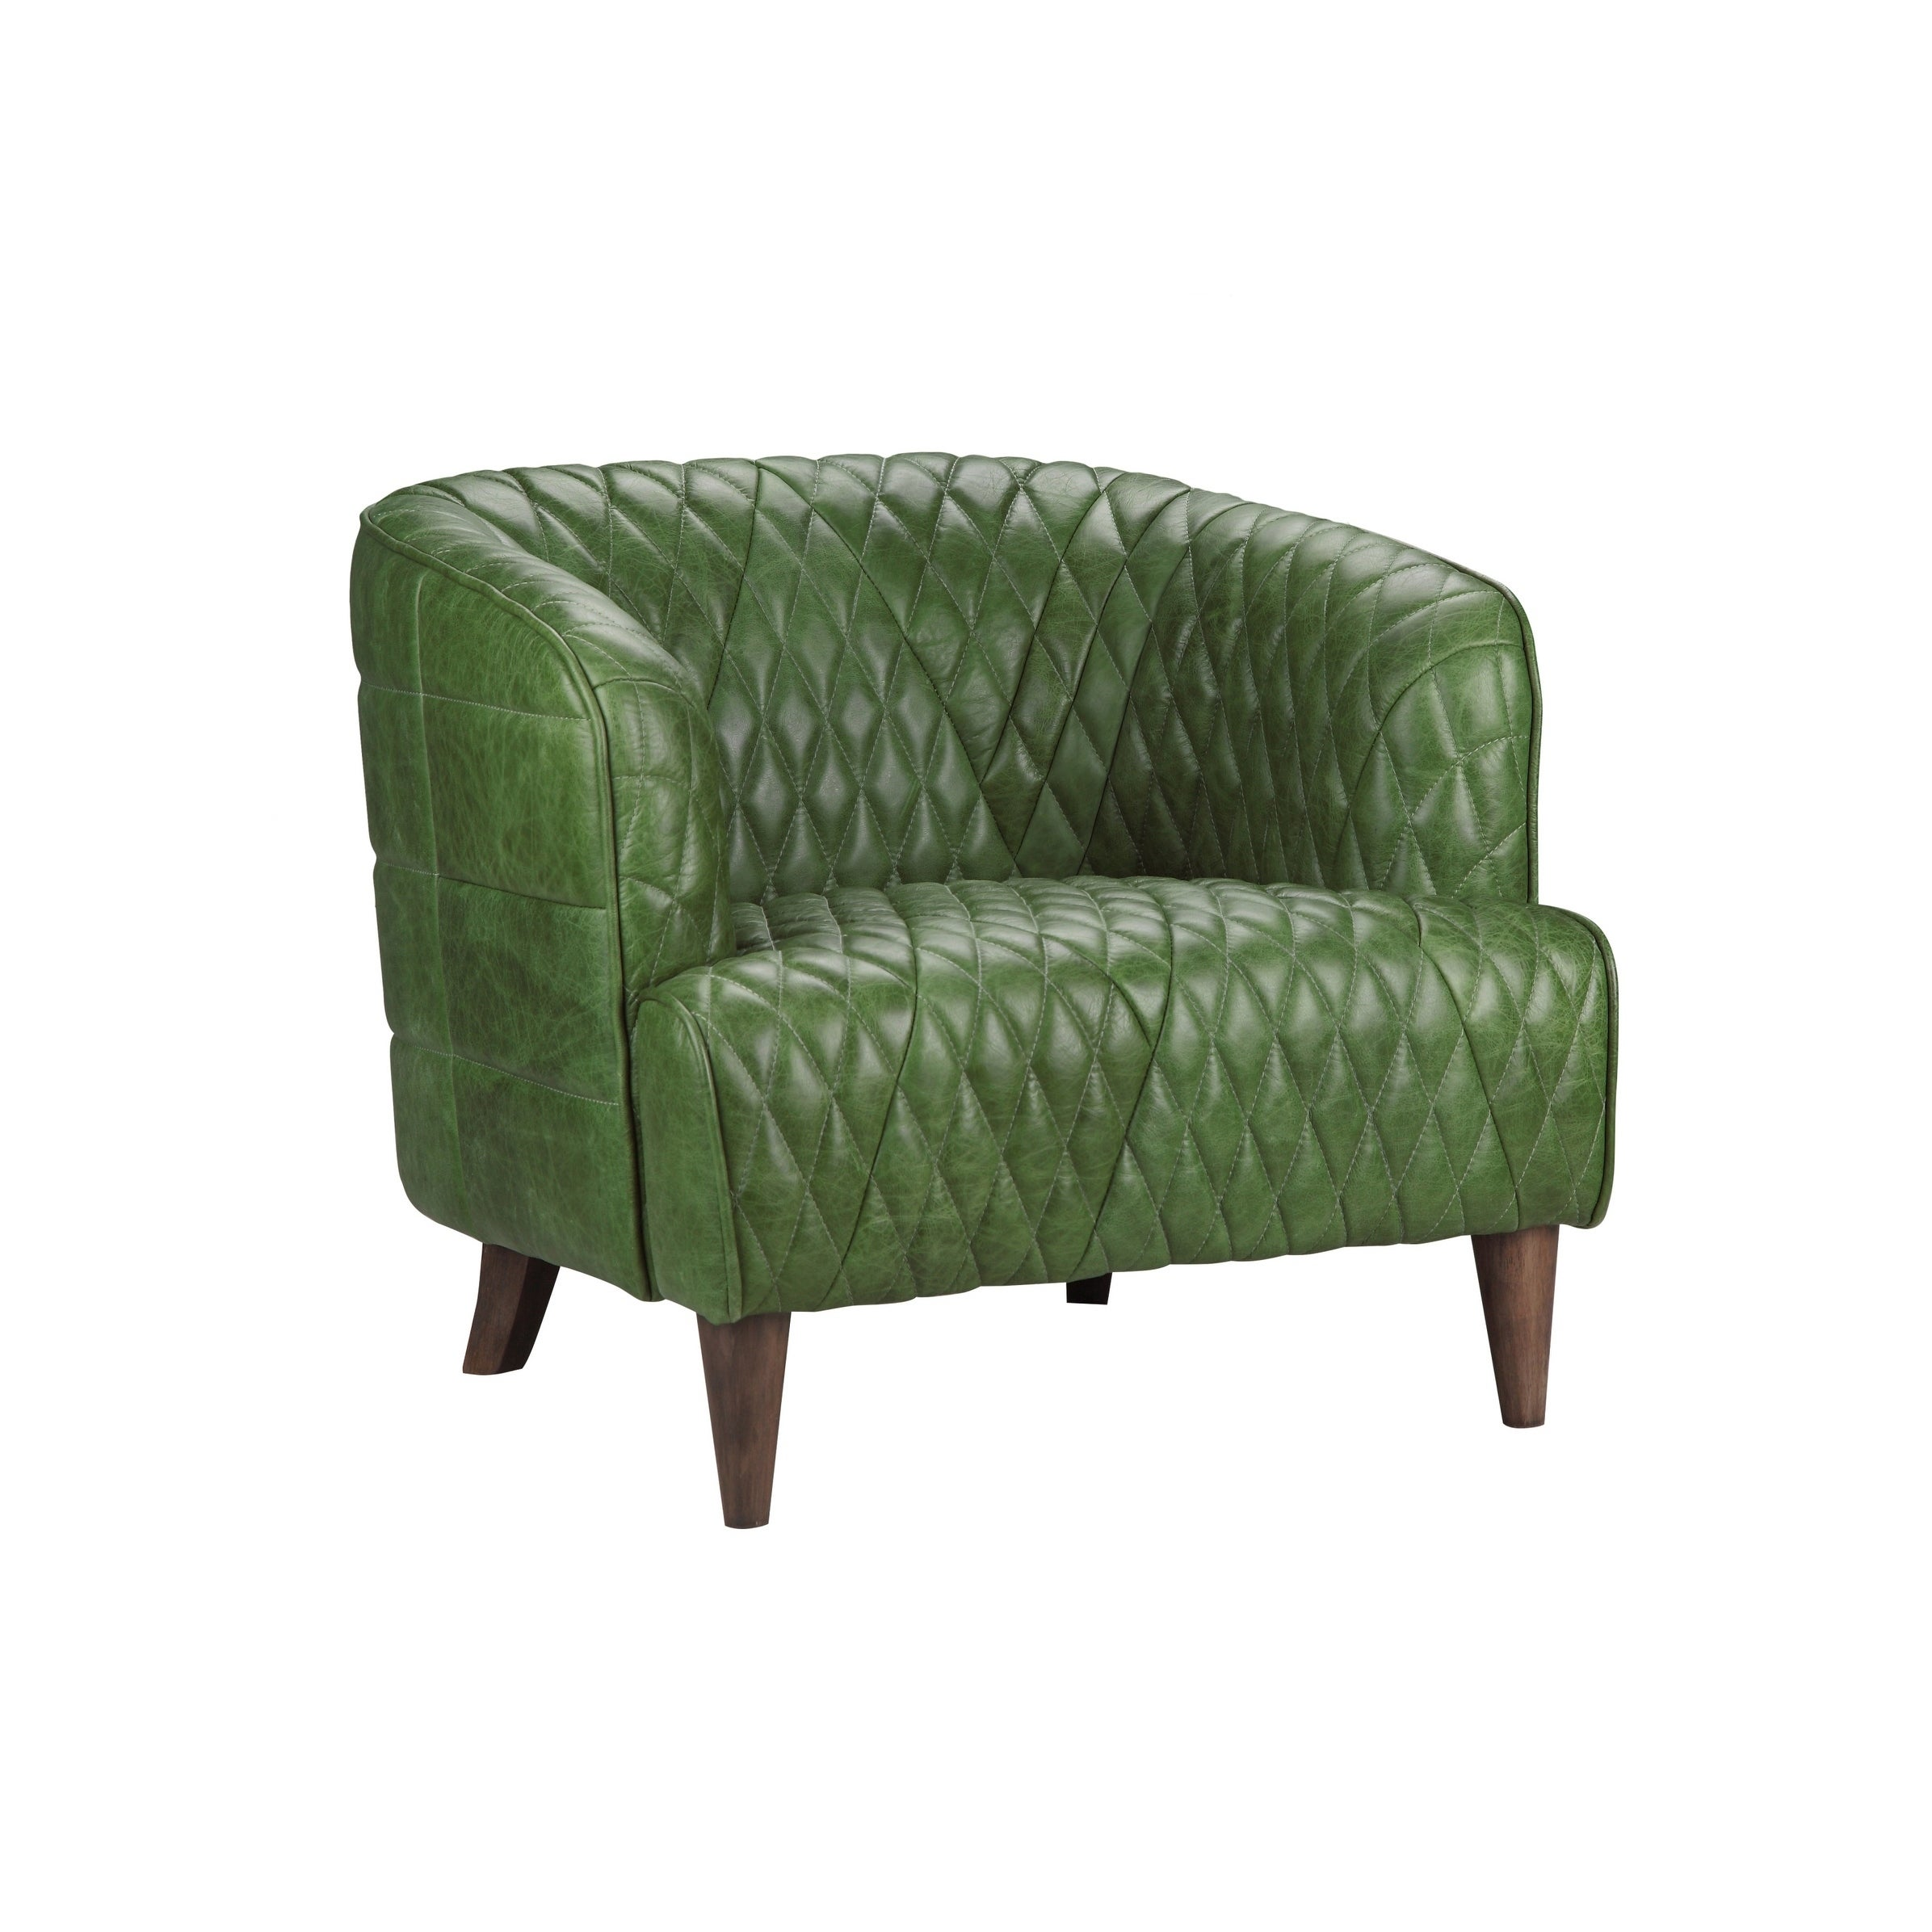 Green, Leather Furniture | Shop Our Best Home Goods Deals Online At  Overstock.com